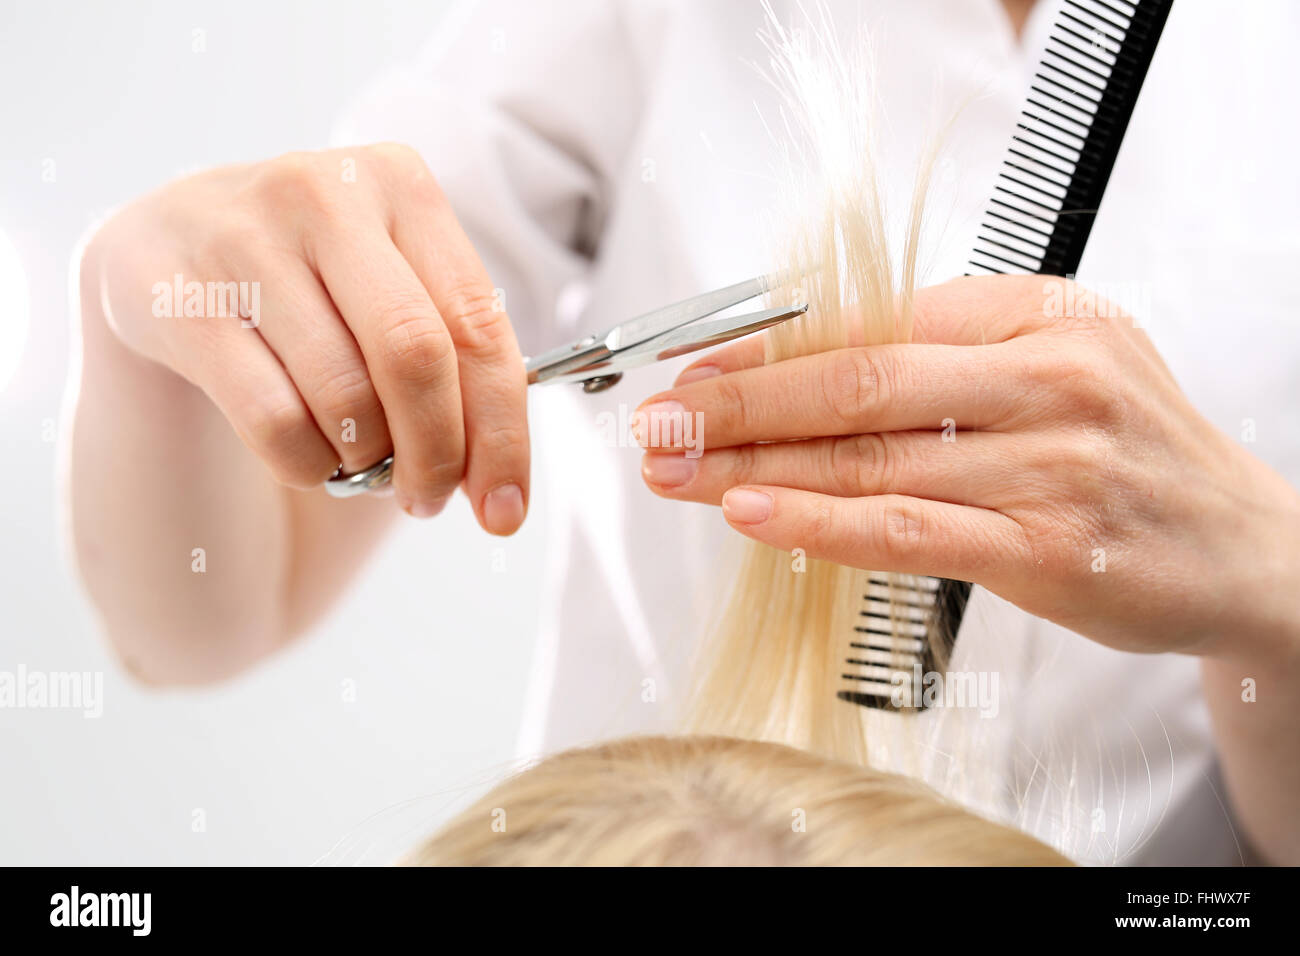 Barber haircut woman in a hair salon. Undercutting the split ends of hair - Stock Image